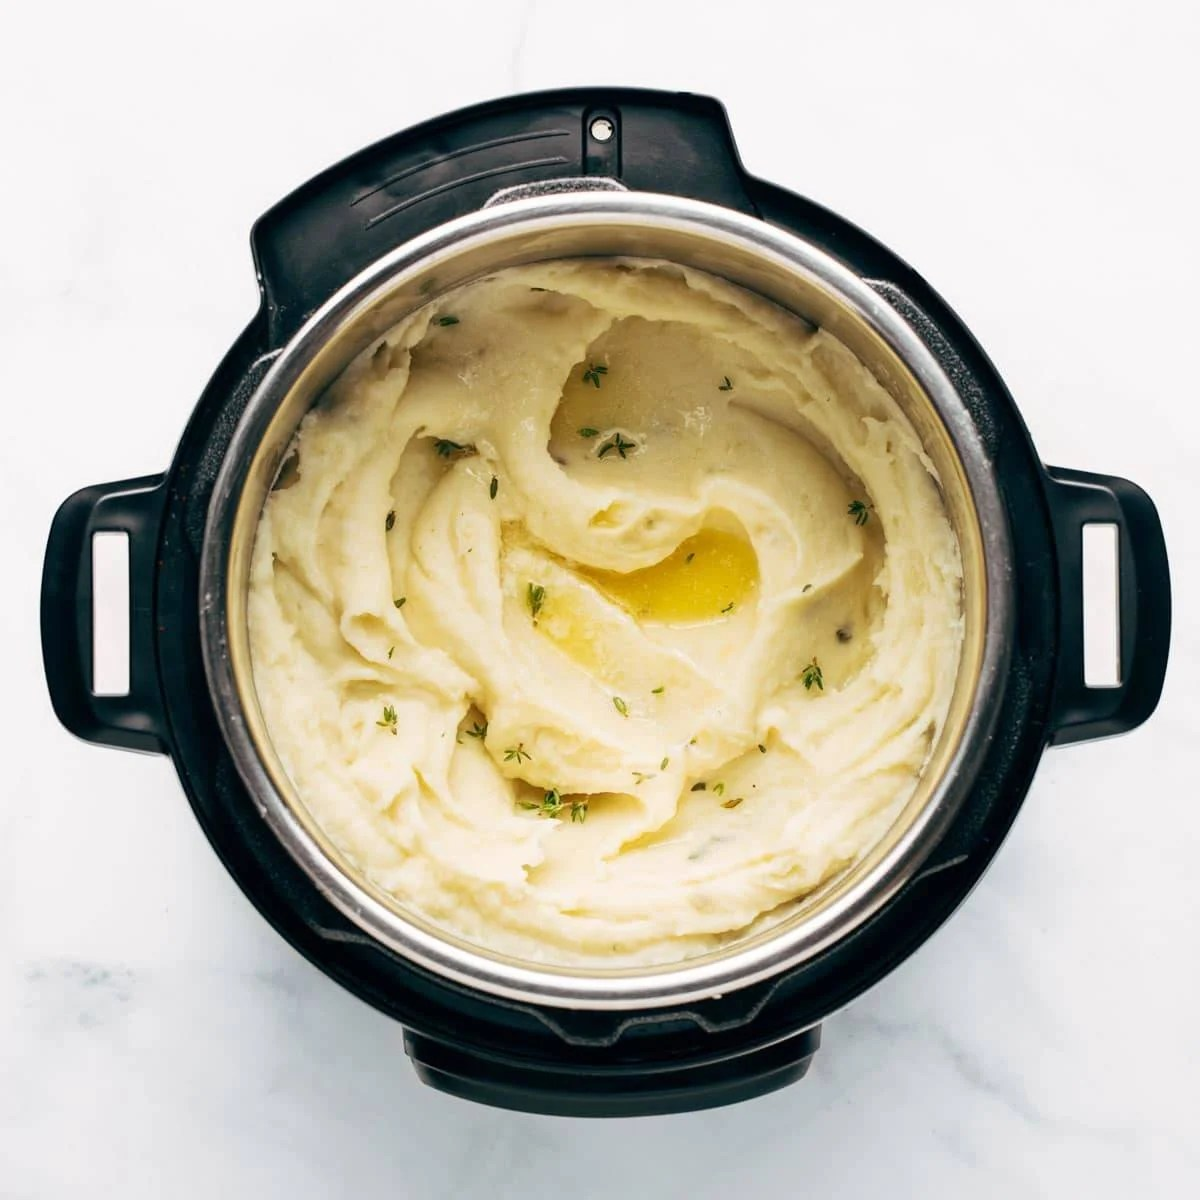 Mashed potatoes in the Instant Pot.